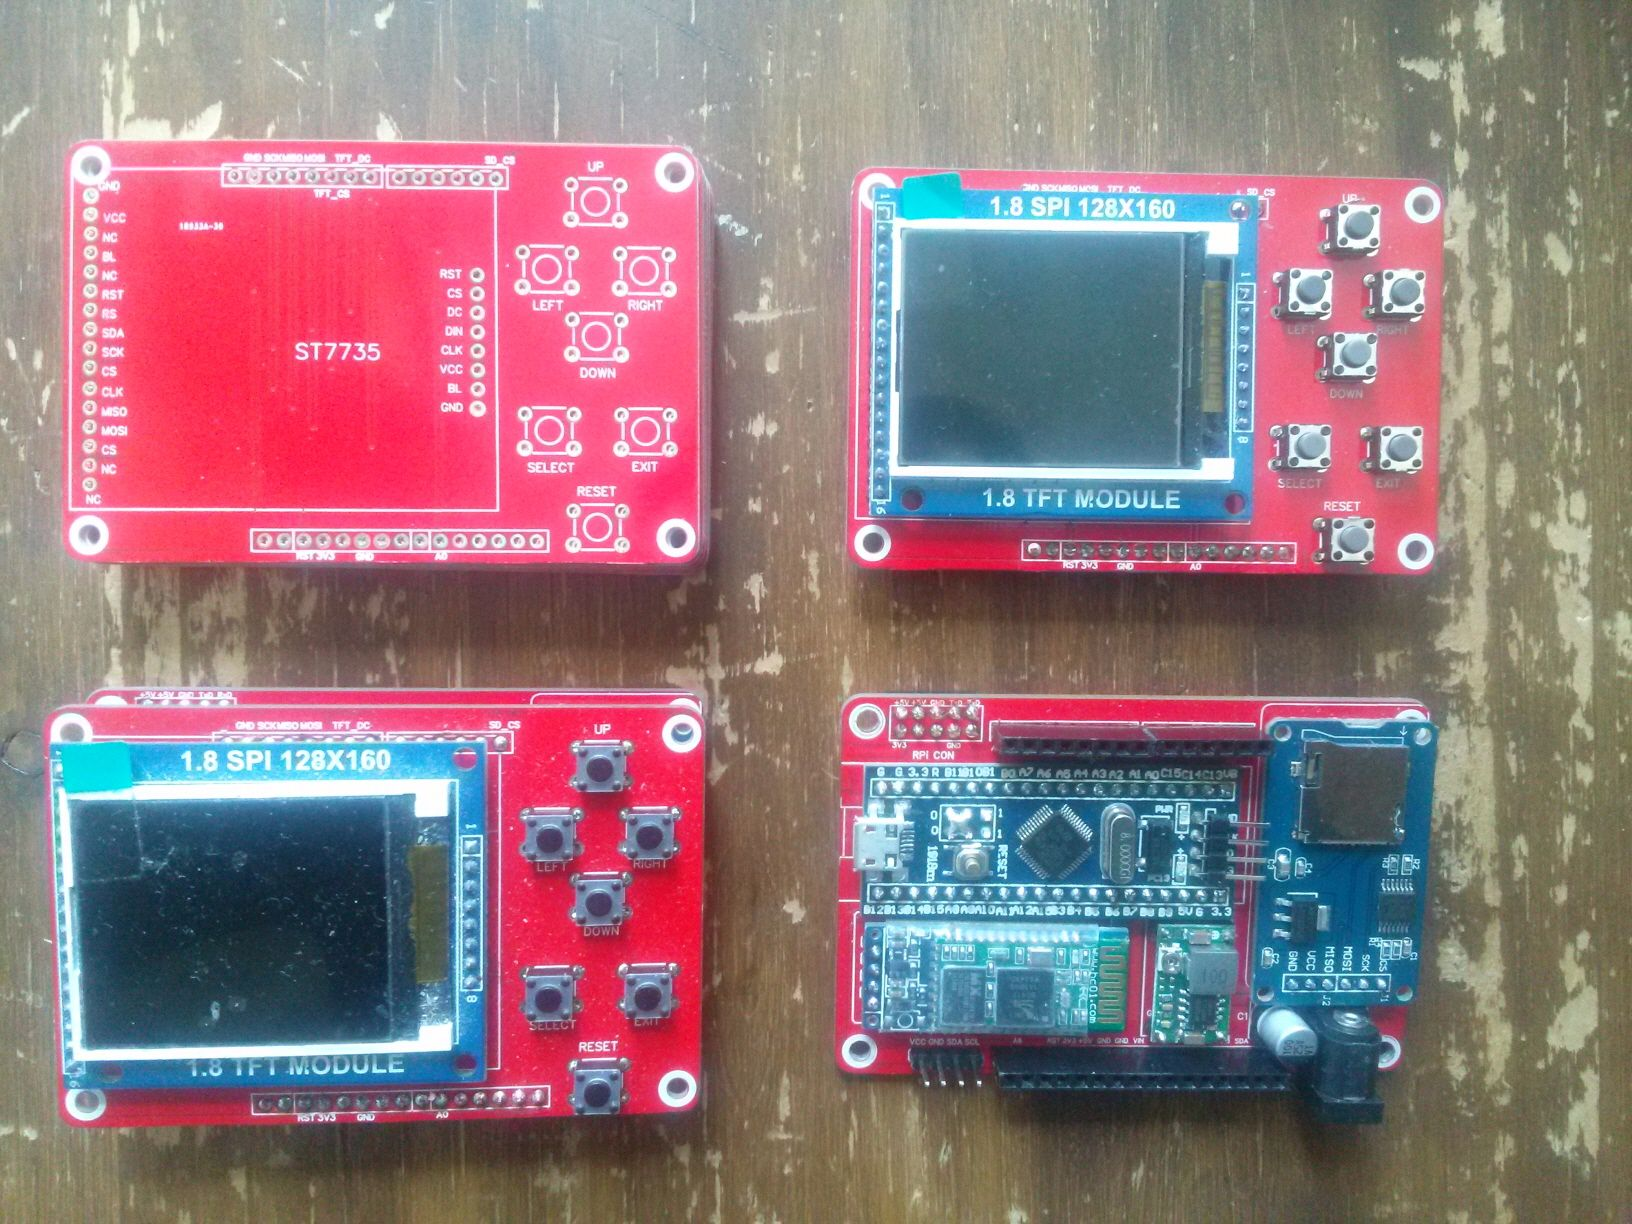 Arduino 18 Tft Lcd Shield Electronics Craft Pinterest Crafts Pi Cnc Projects Buy Alamode Controller Calculator Raspberry